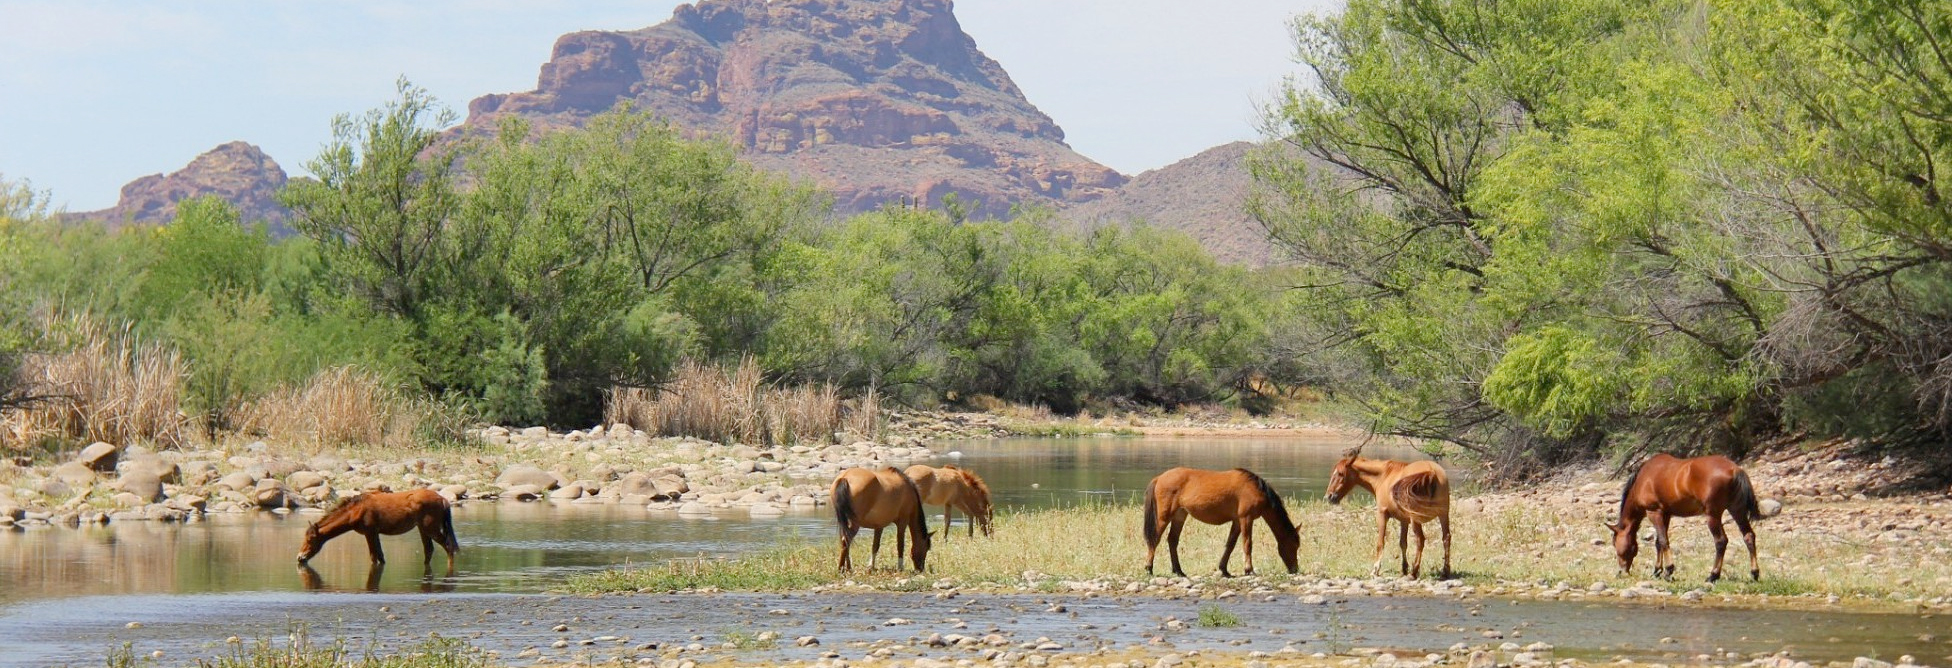 The Salt River Wild Horses are now Protected by AZ State Law.